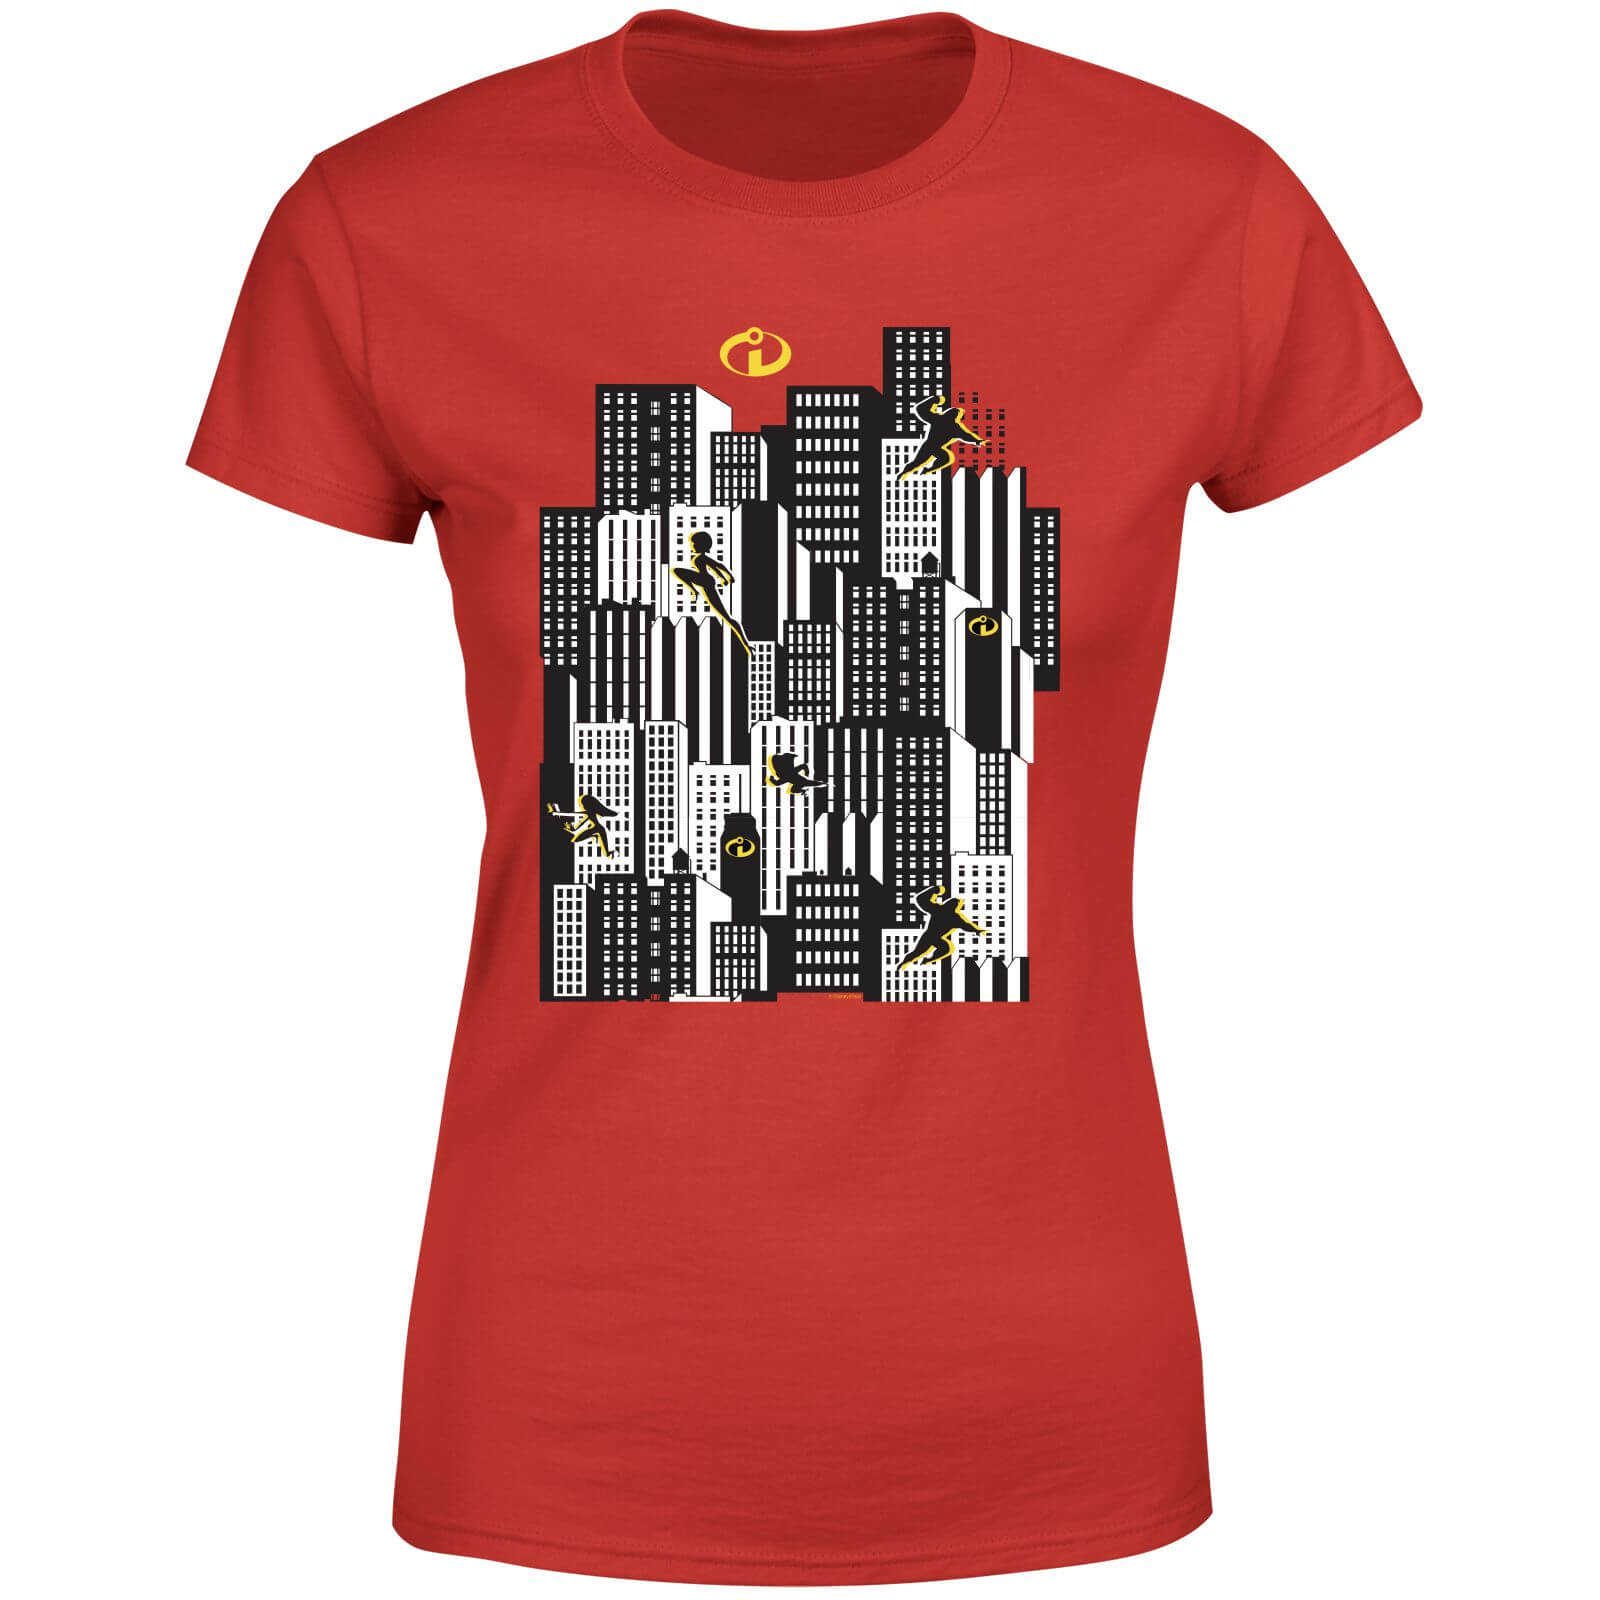 c09590f0 The Incredibles 2 Skyline Women's T-Shirt - Red Clothing | Zavvi